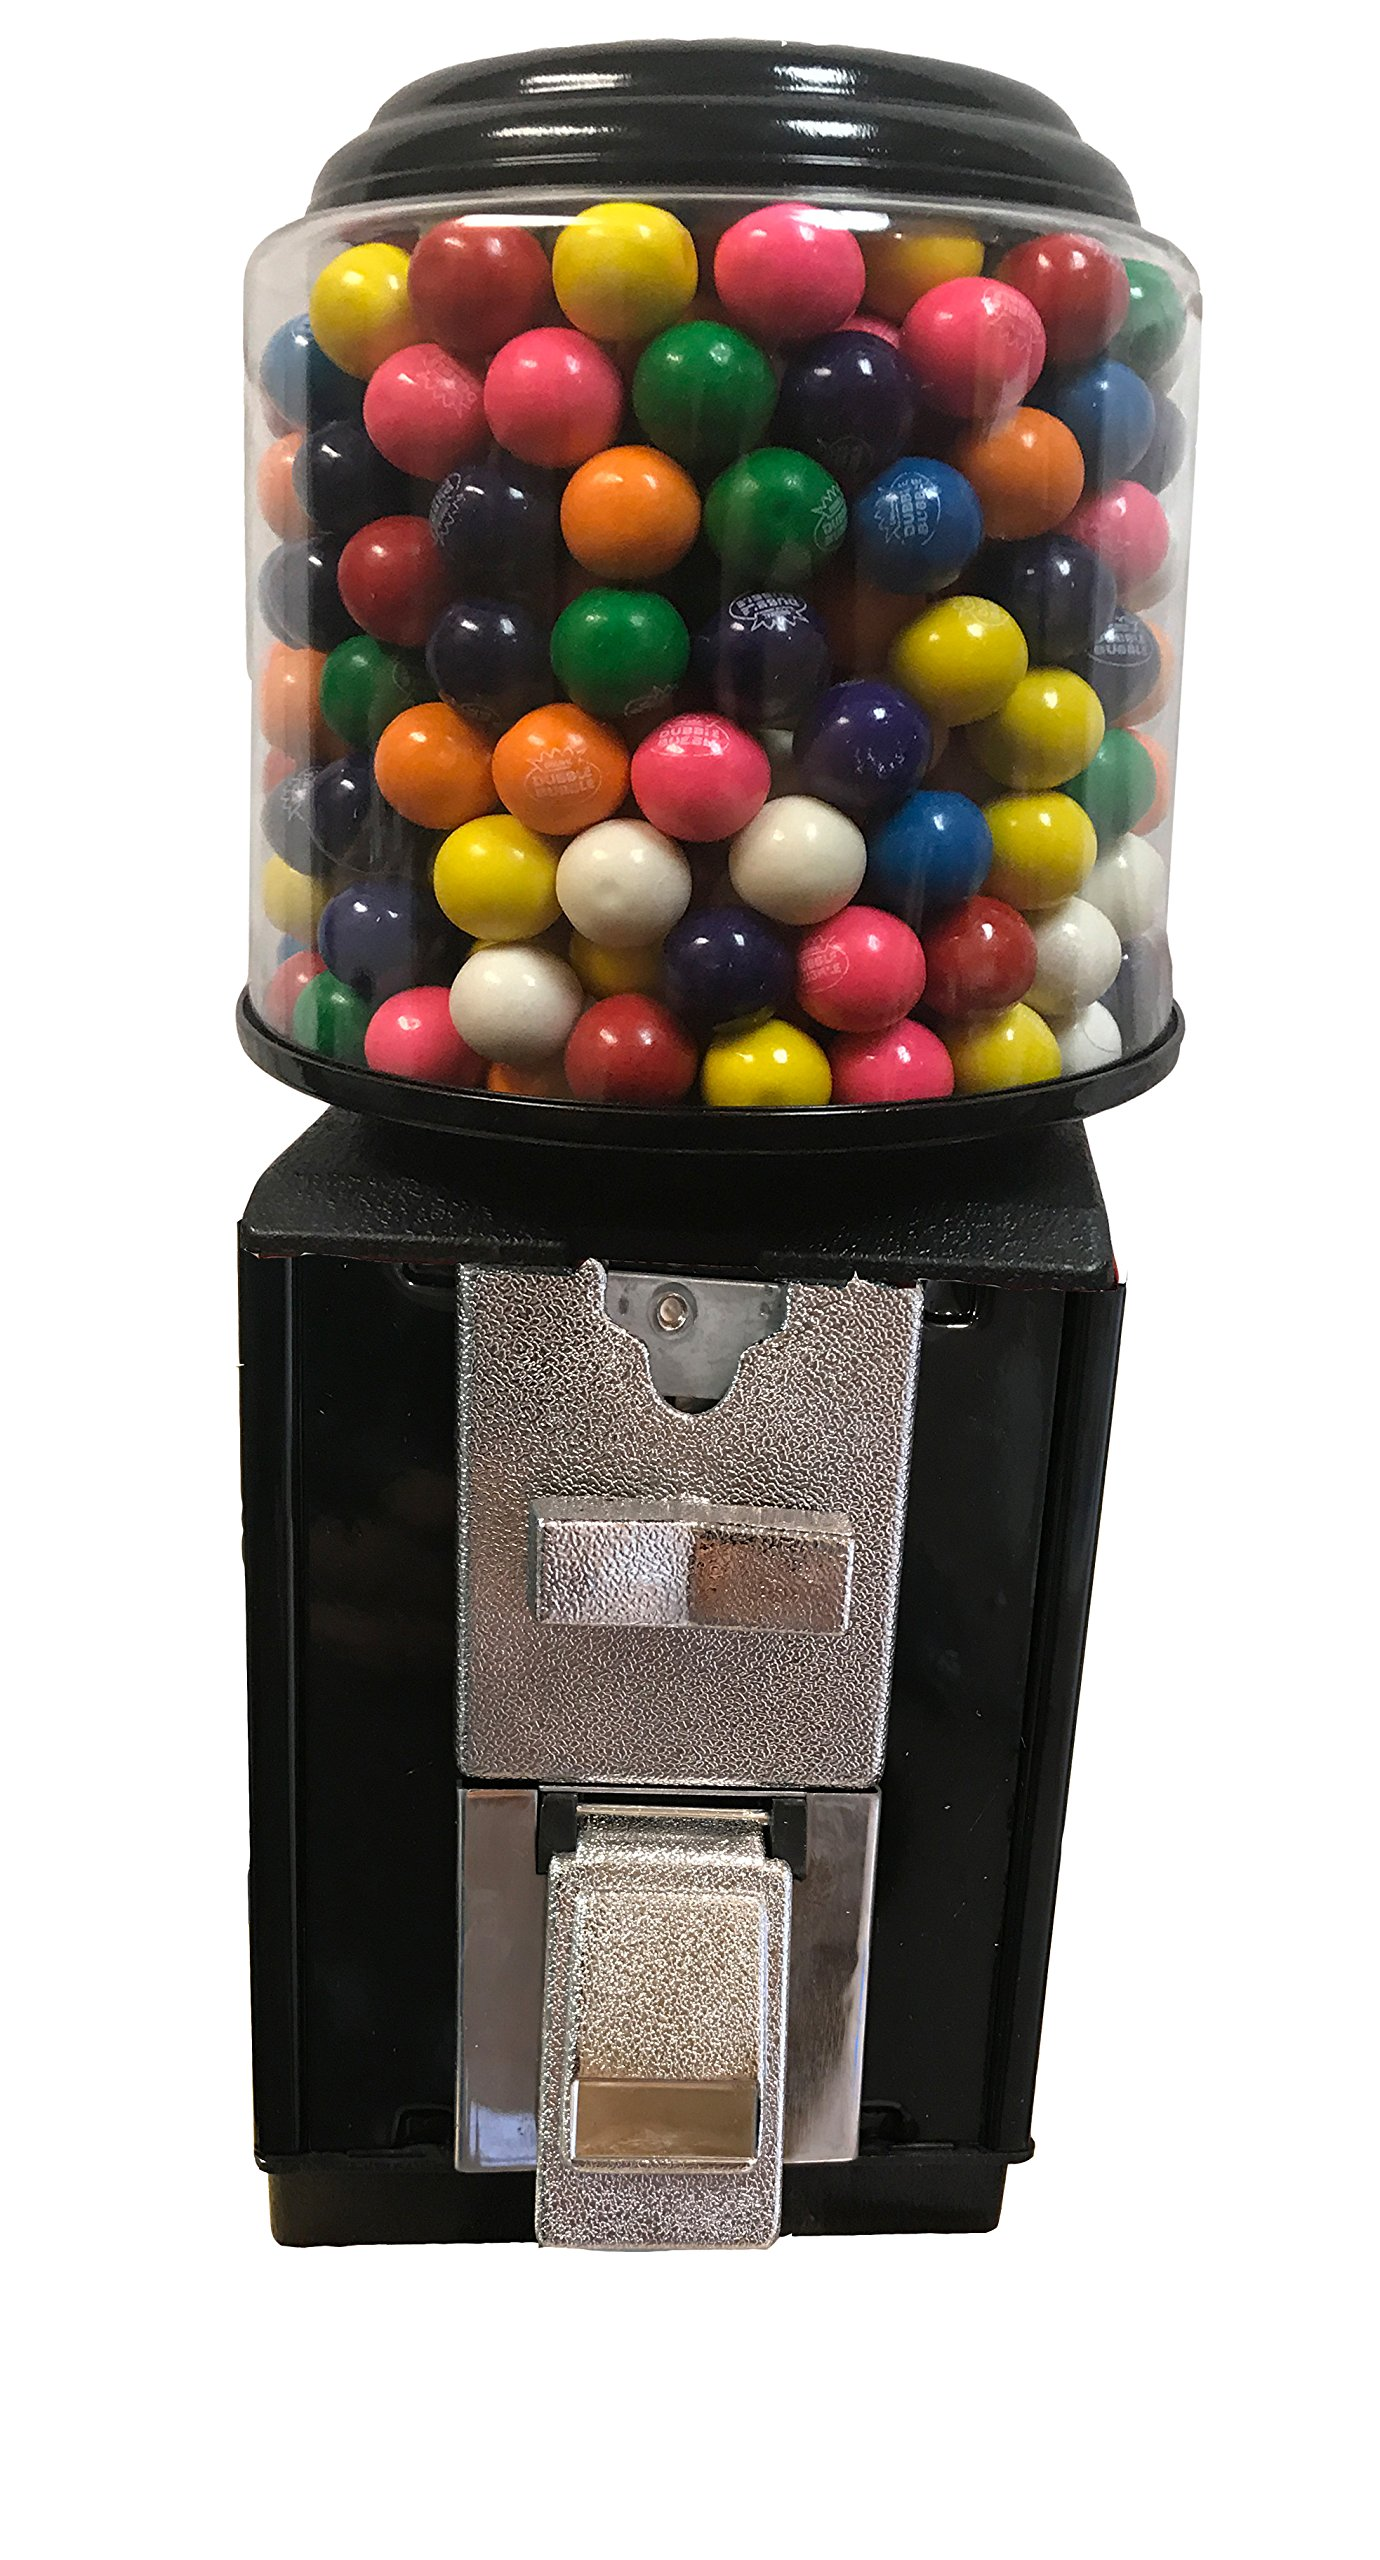 Economy Bulk Vending Gumball Machine (Black)